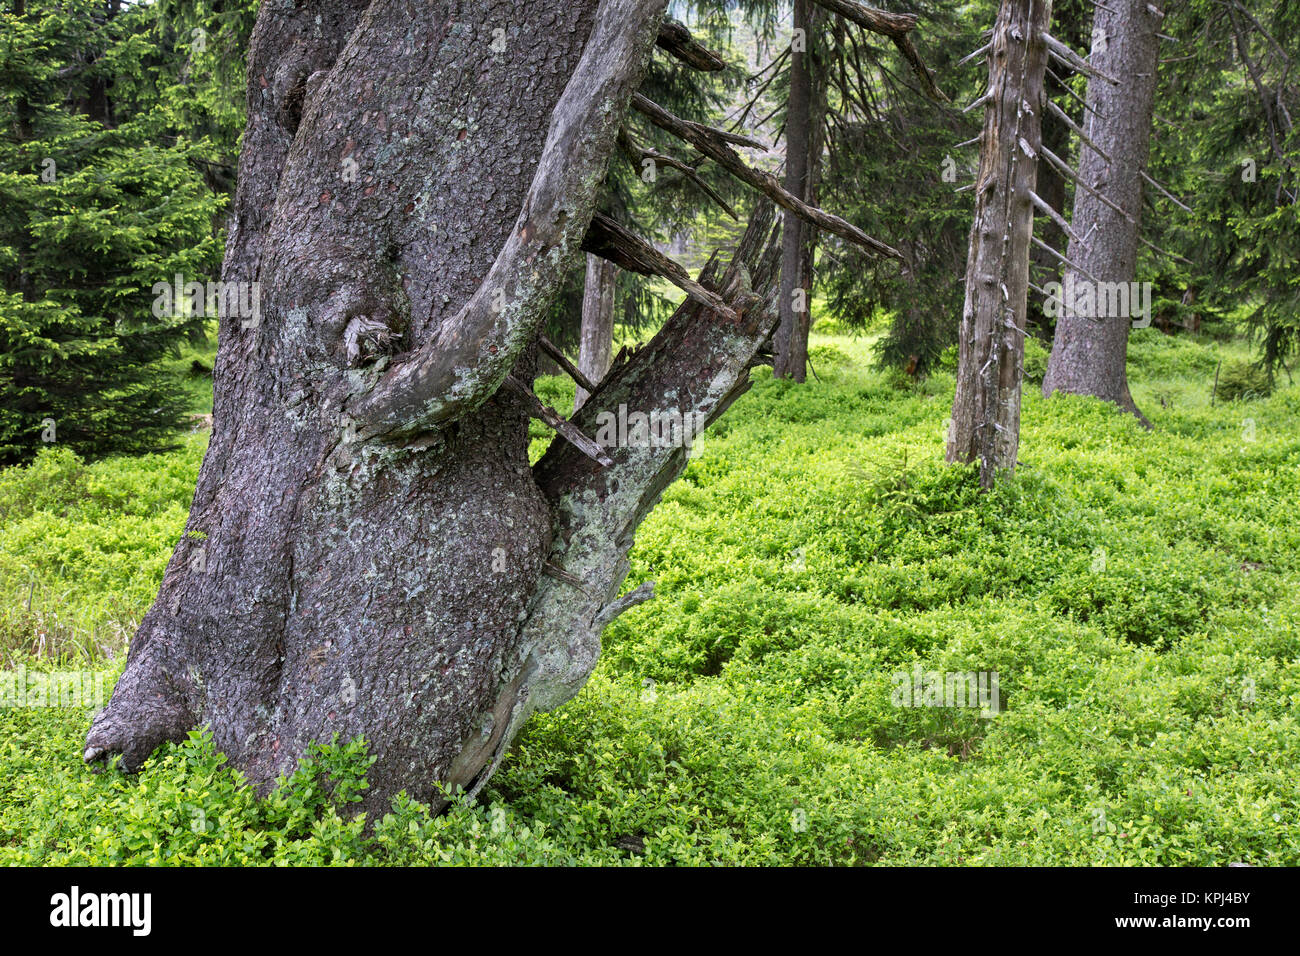 Spruce trees in ancient coniferous forest in the Harz National Park, Saxony-Anhalt, Germany - Stock Image